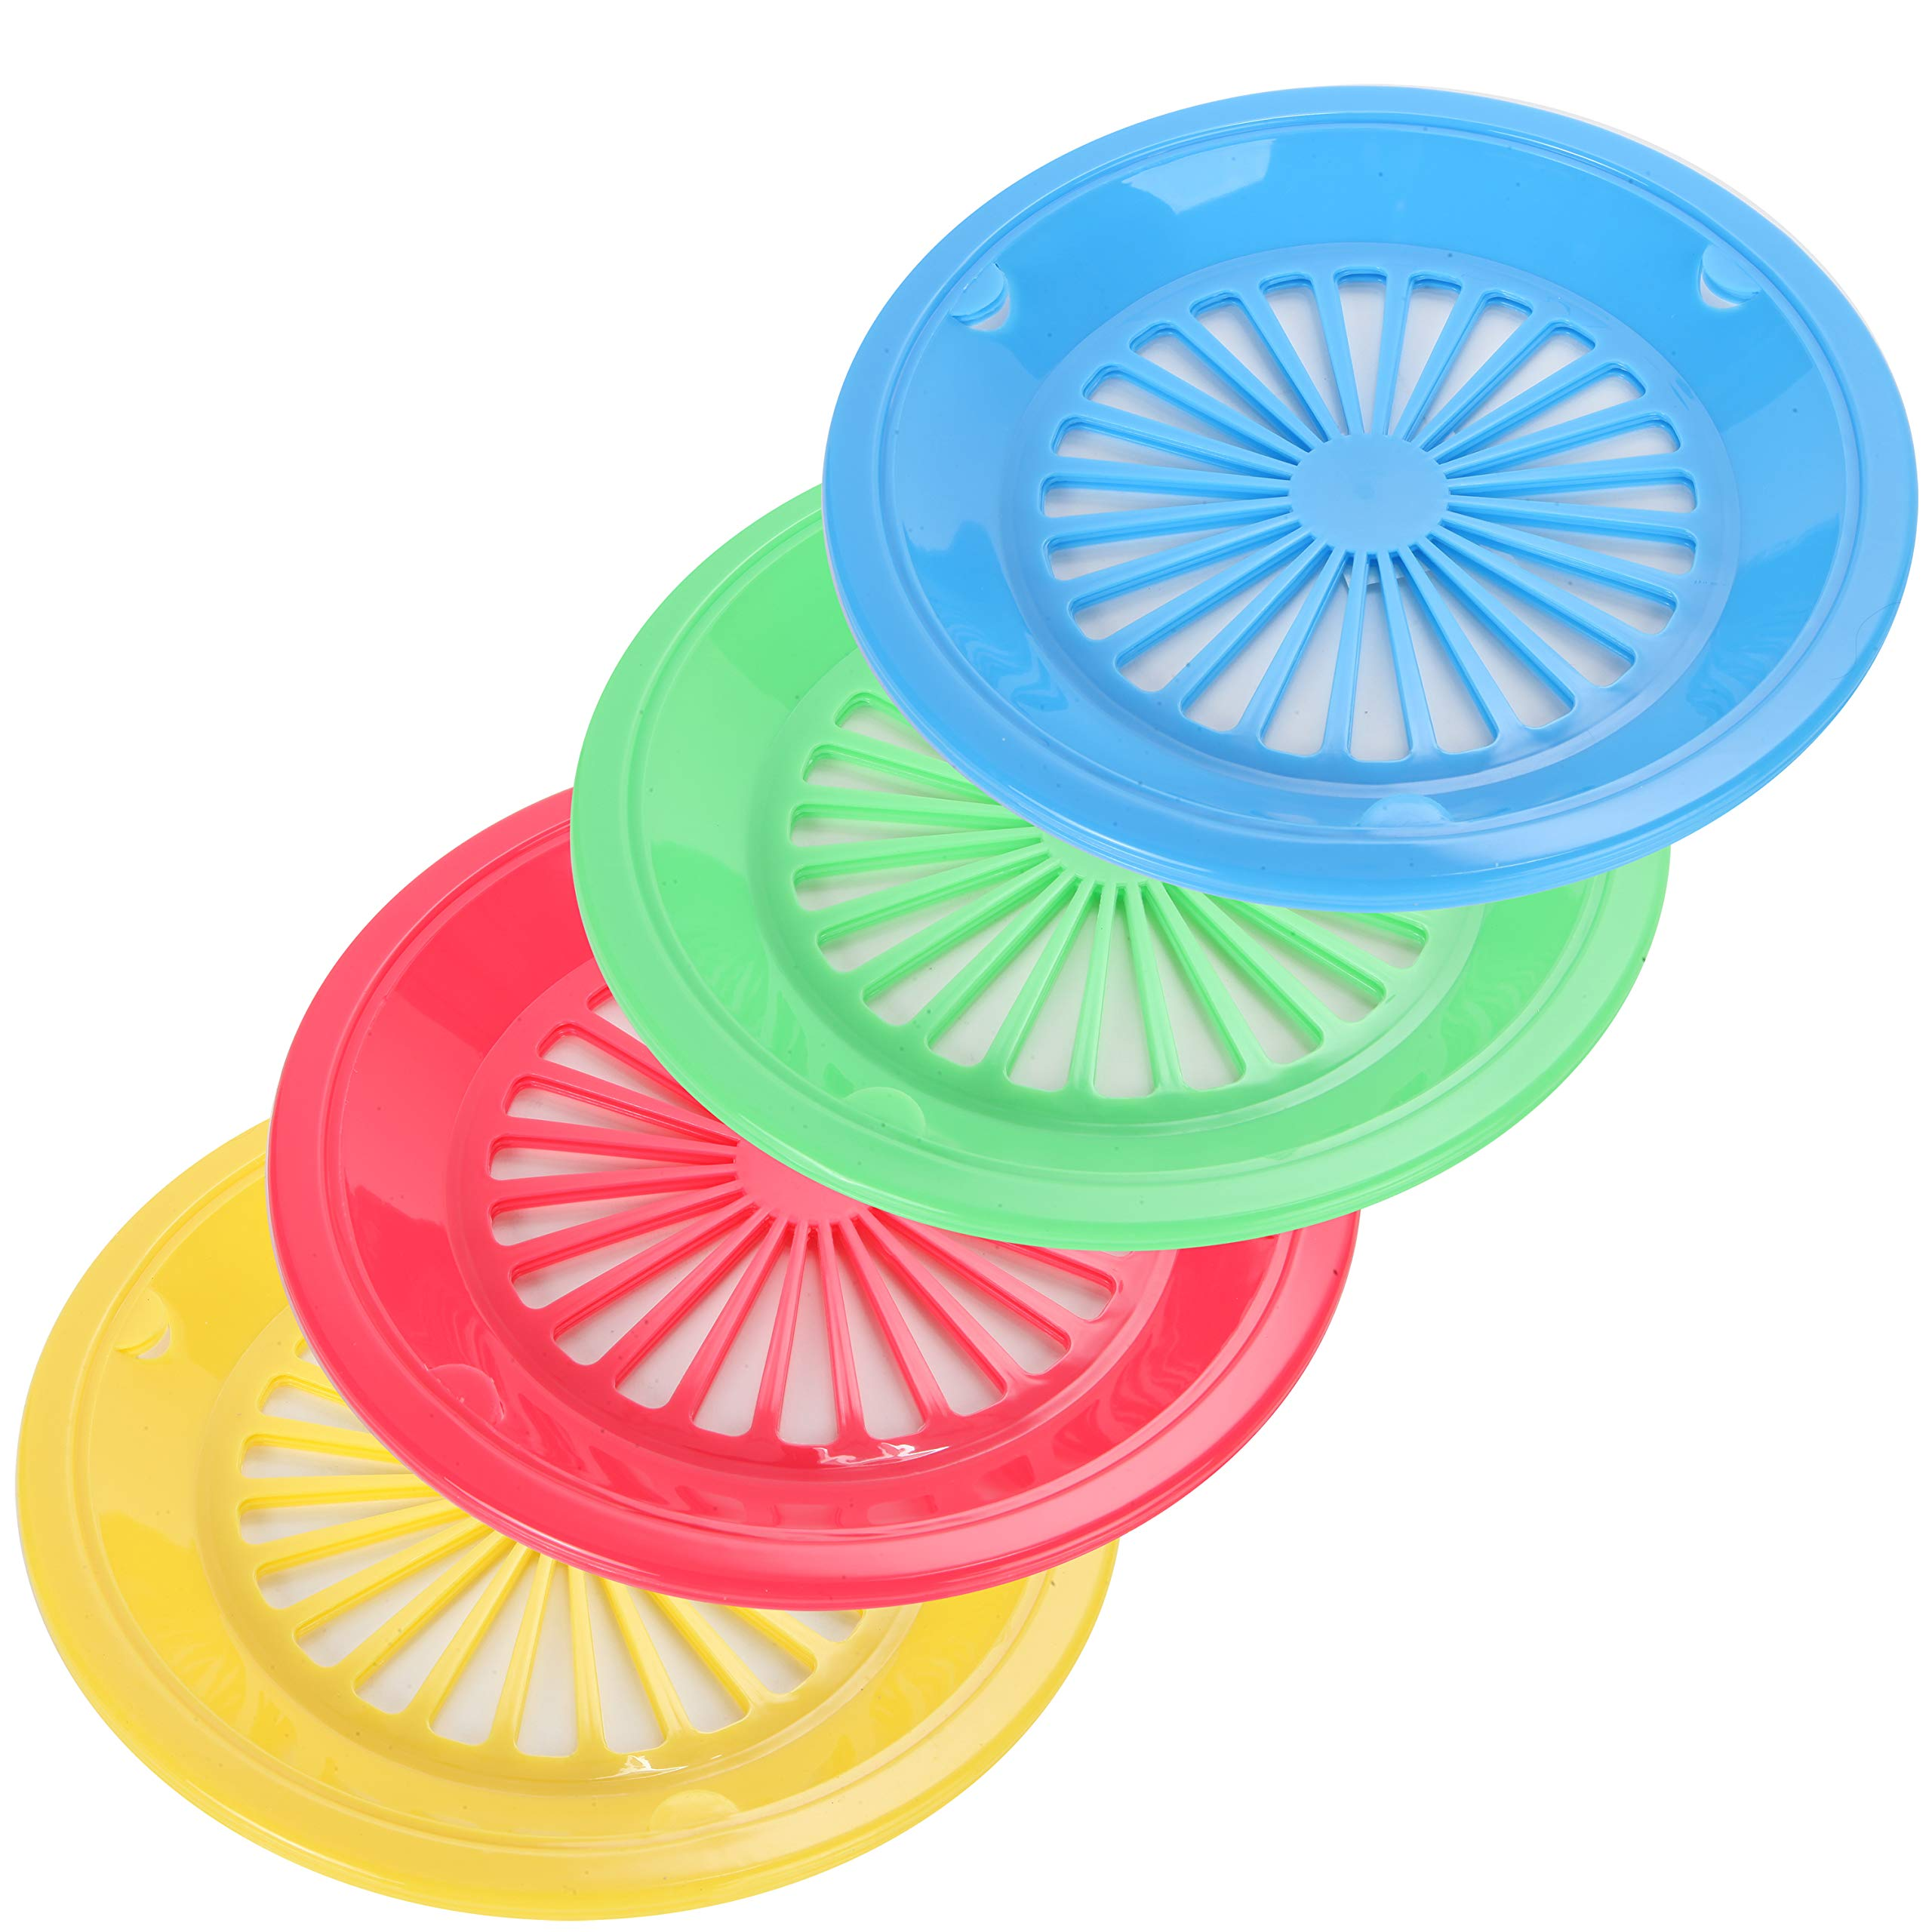 Trenton GIfts Reusable Paper Plate Holder | Durable Plastic | 4 Assorted Colors | 10'' | Set of 12 by Trenton Gifts